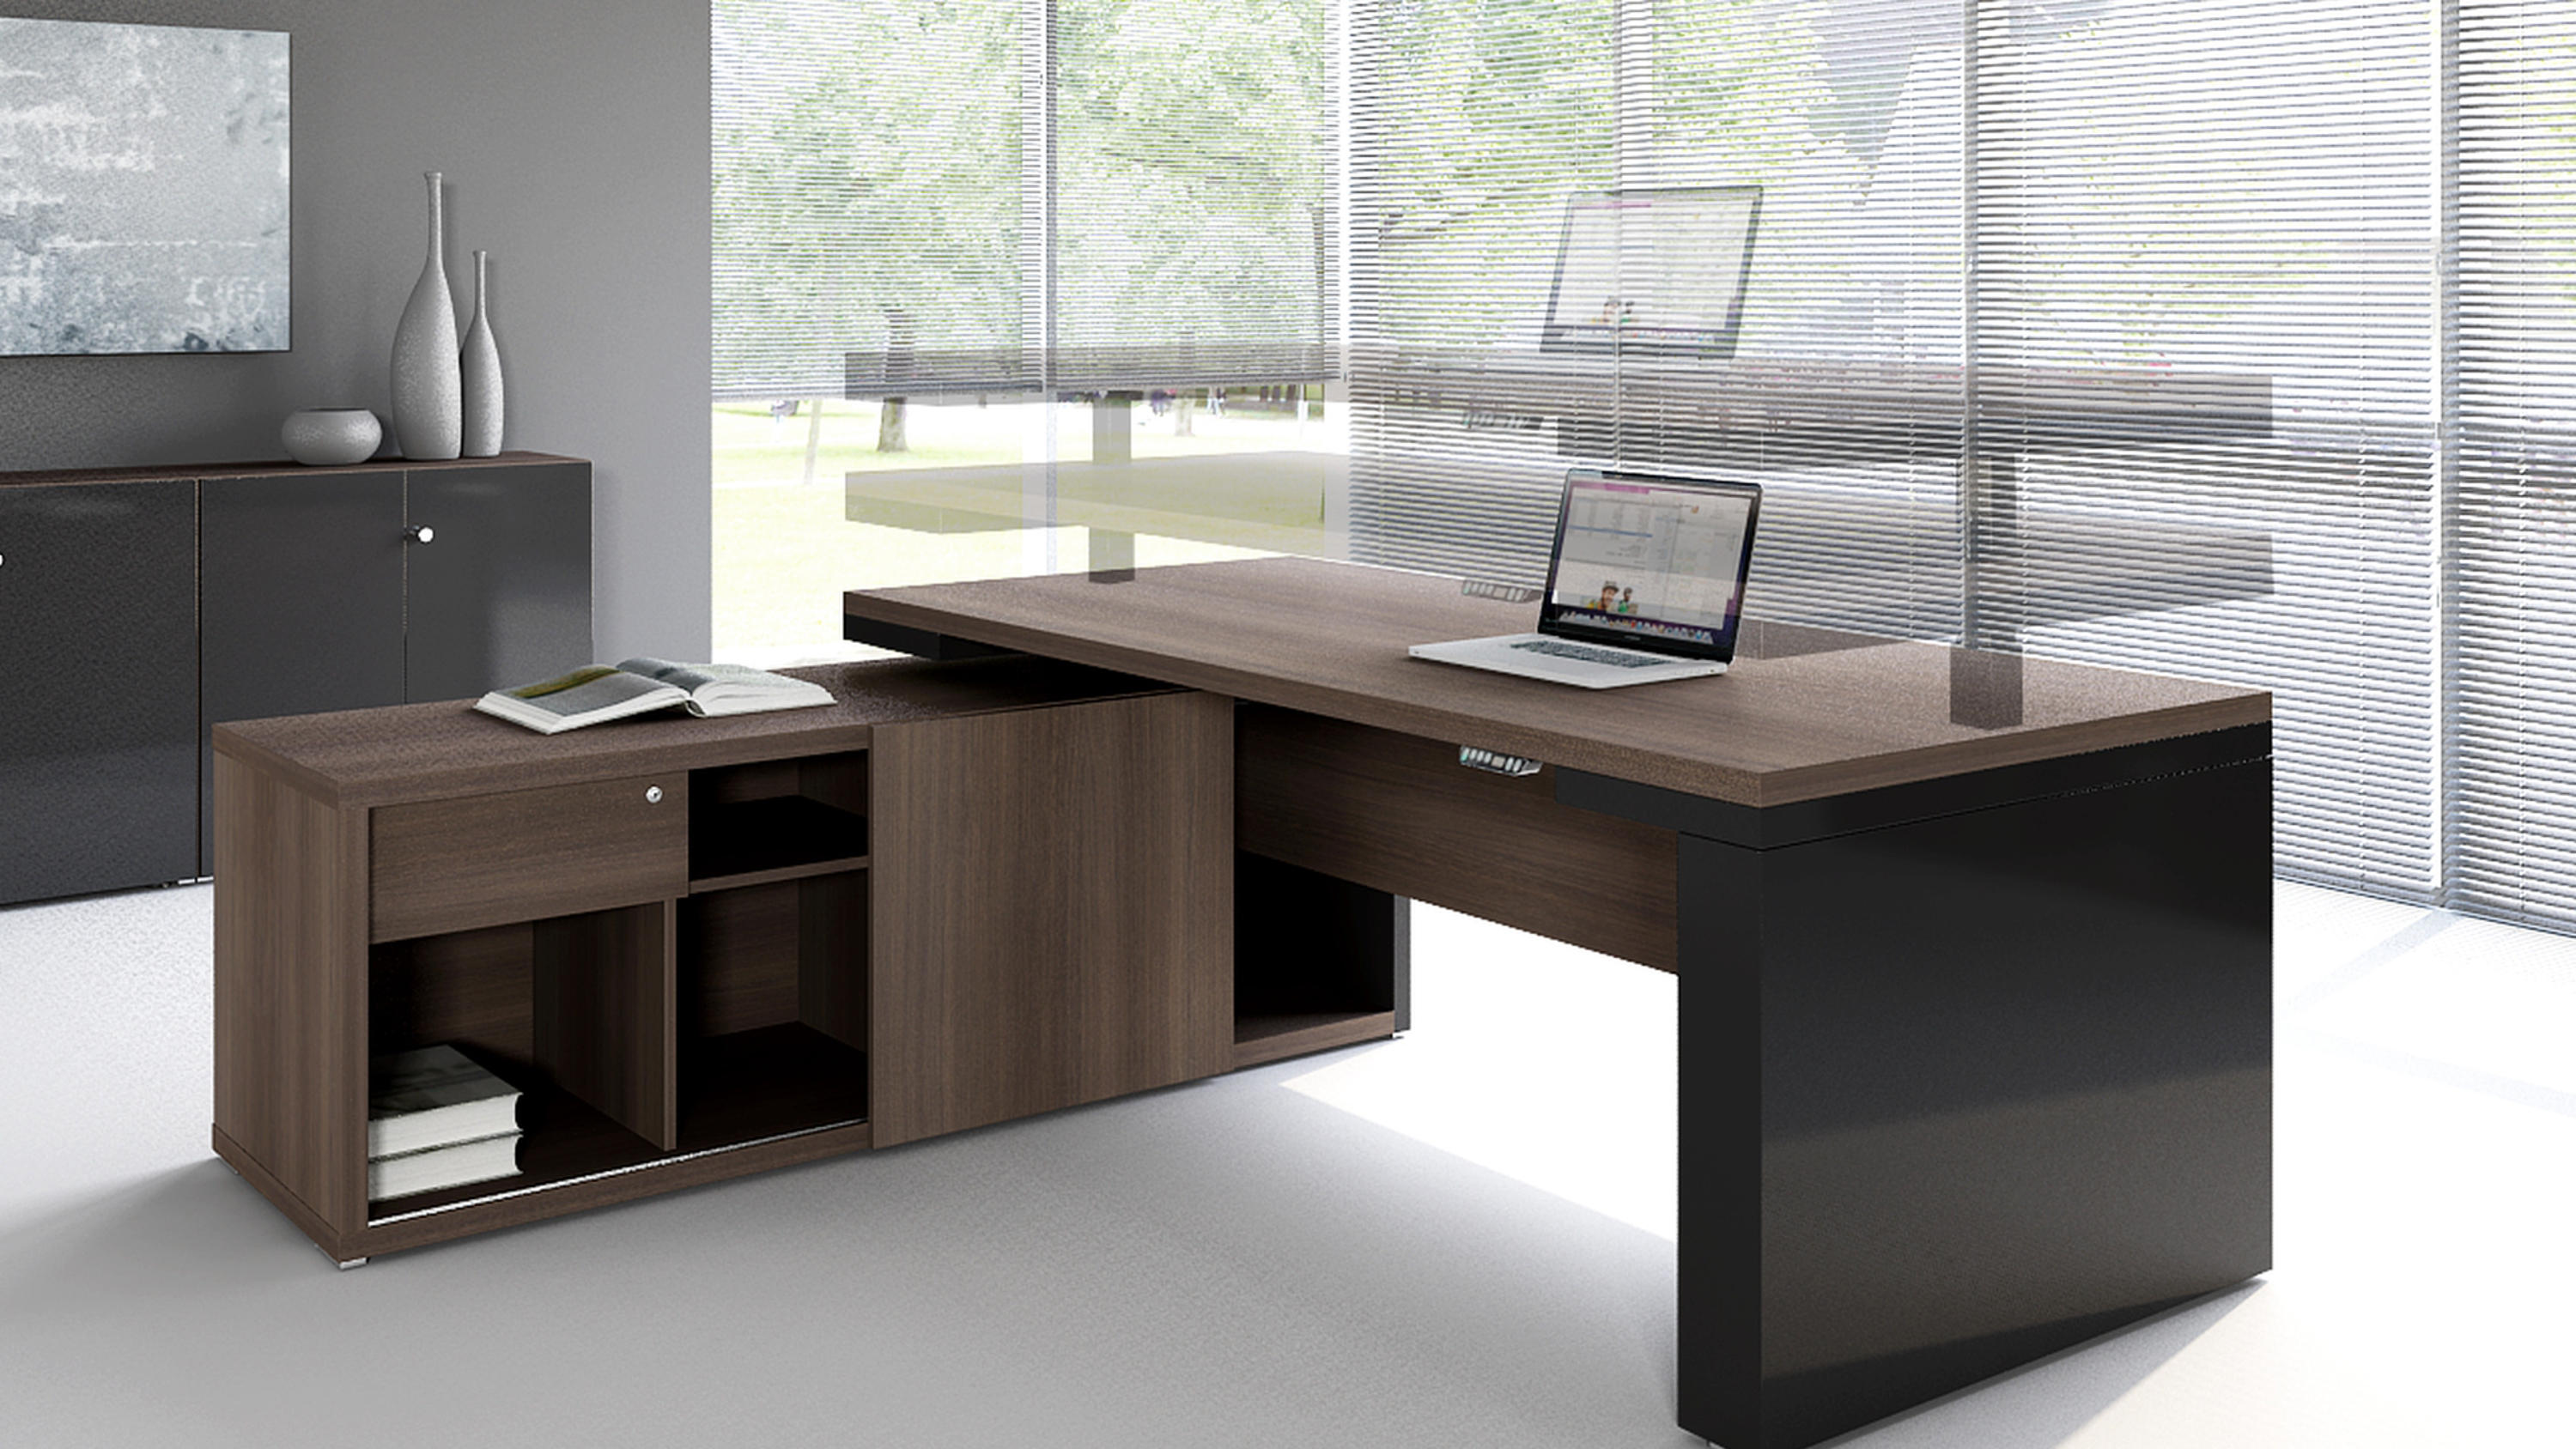 mito up down individual desks from mdd architonic. Black Bedroom Furniture Sets. Home Design Ideas